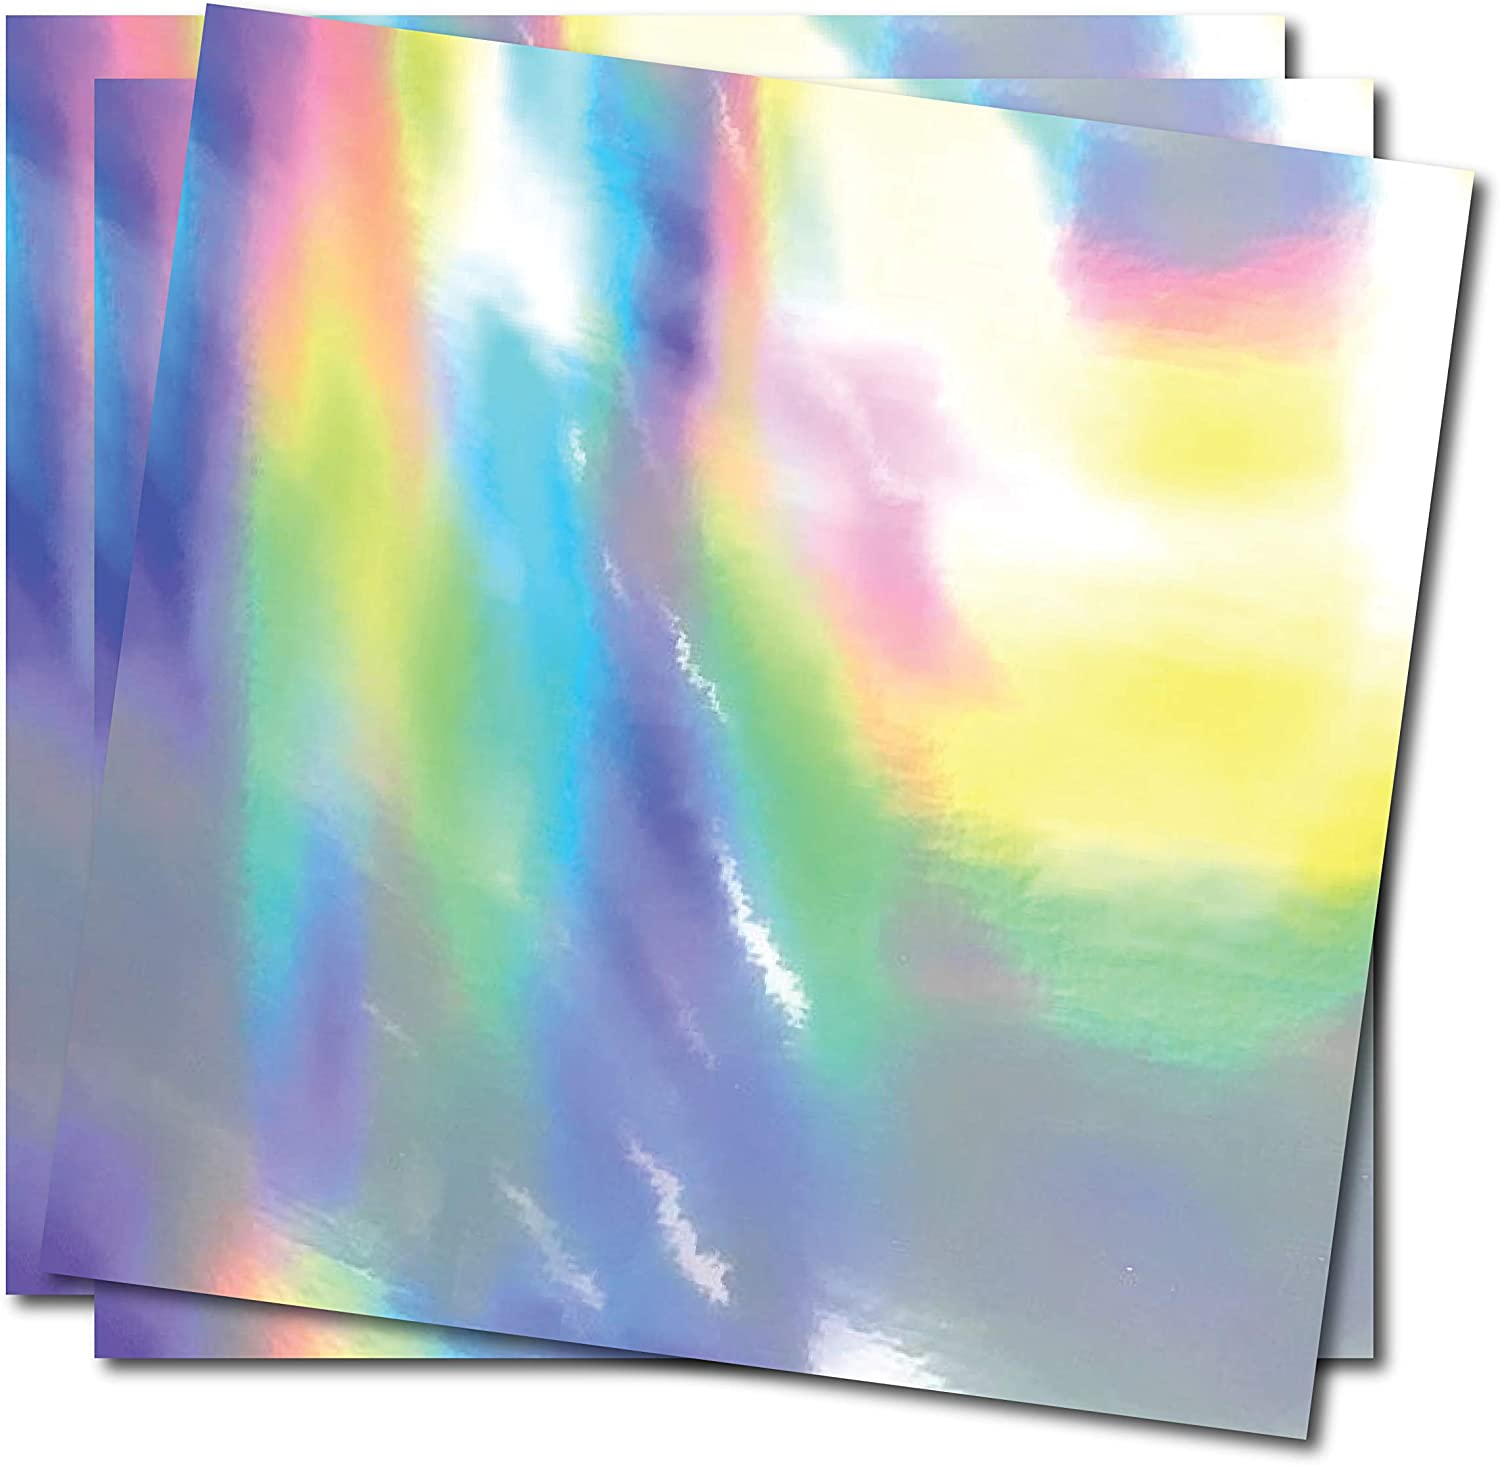 Darknaila - Holographic Silver Rainbow Self-A Slick Colorful Oil Max 41% OFF Save money